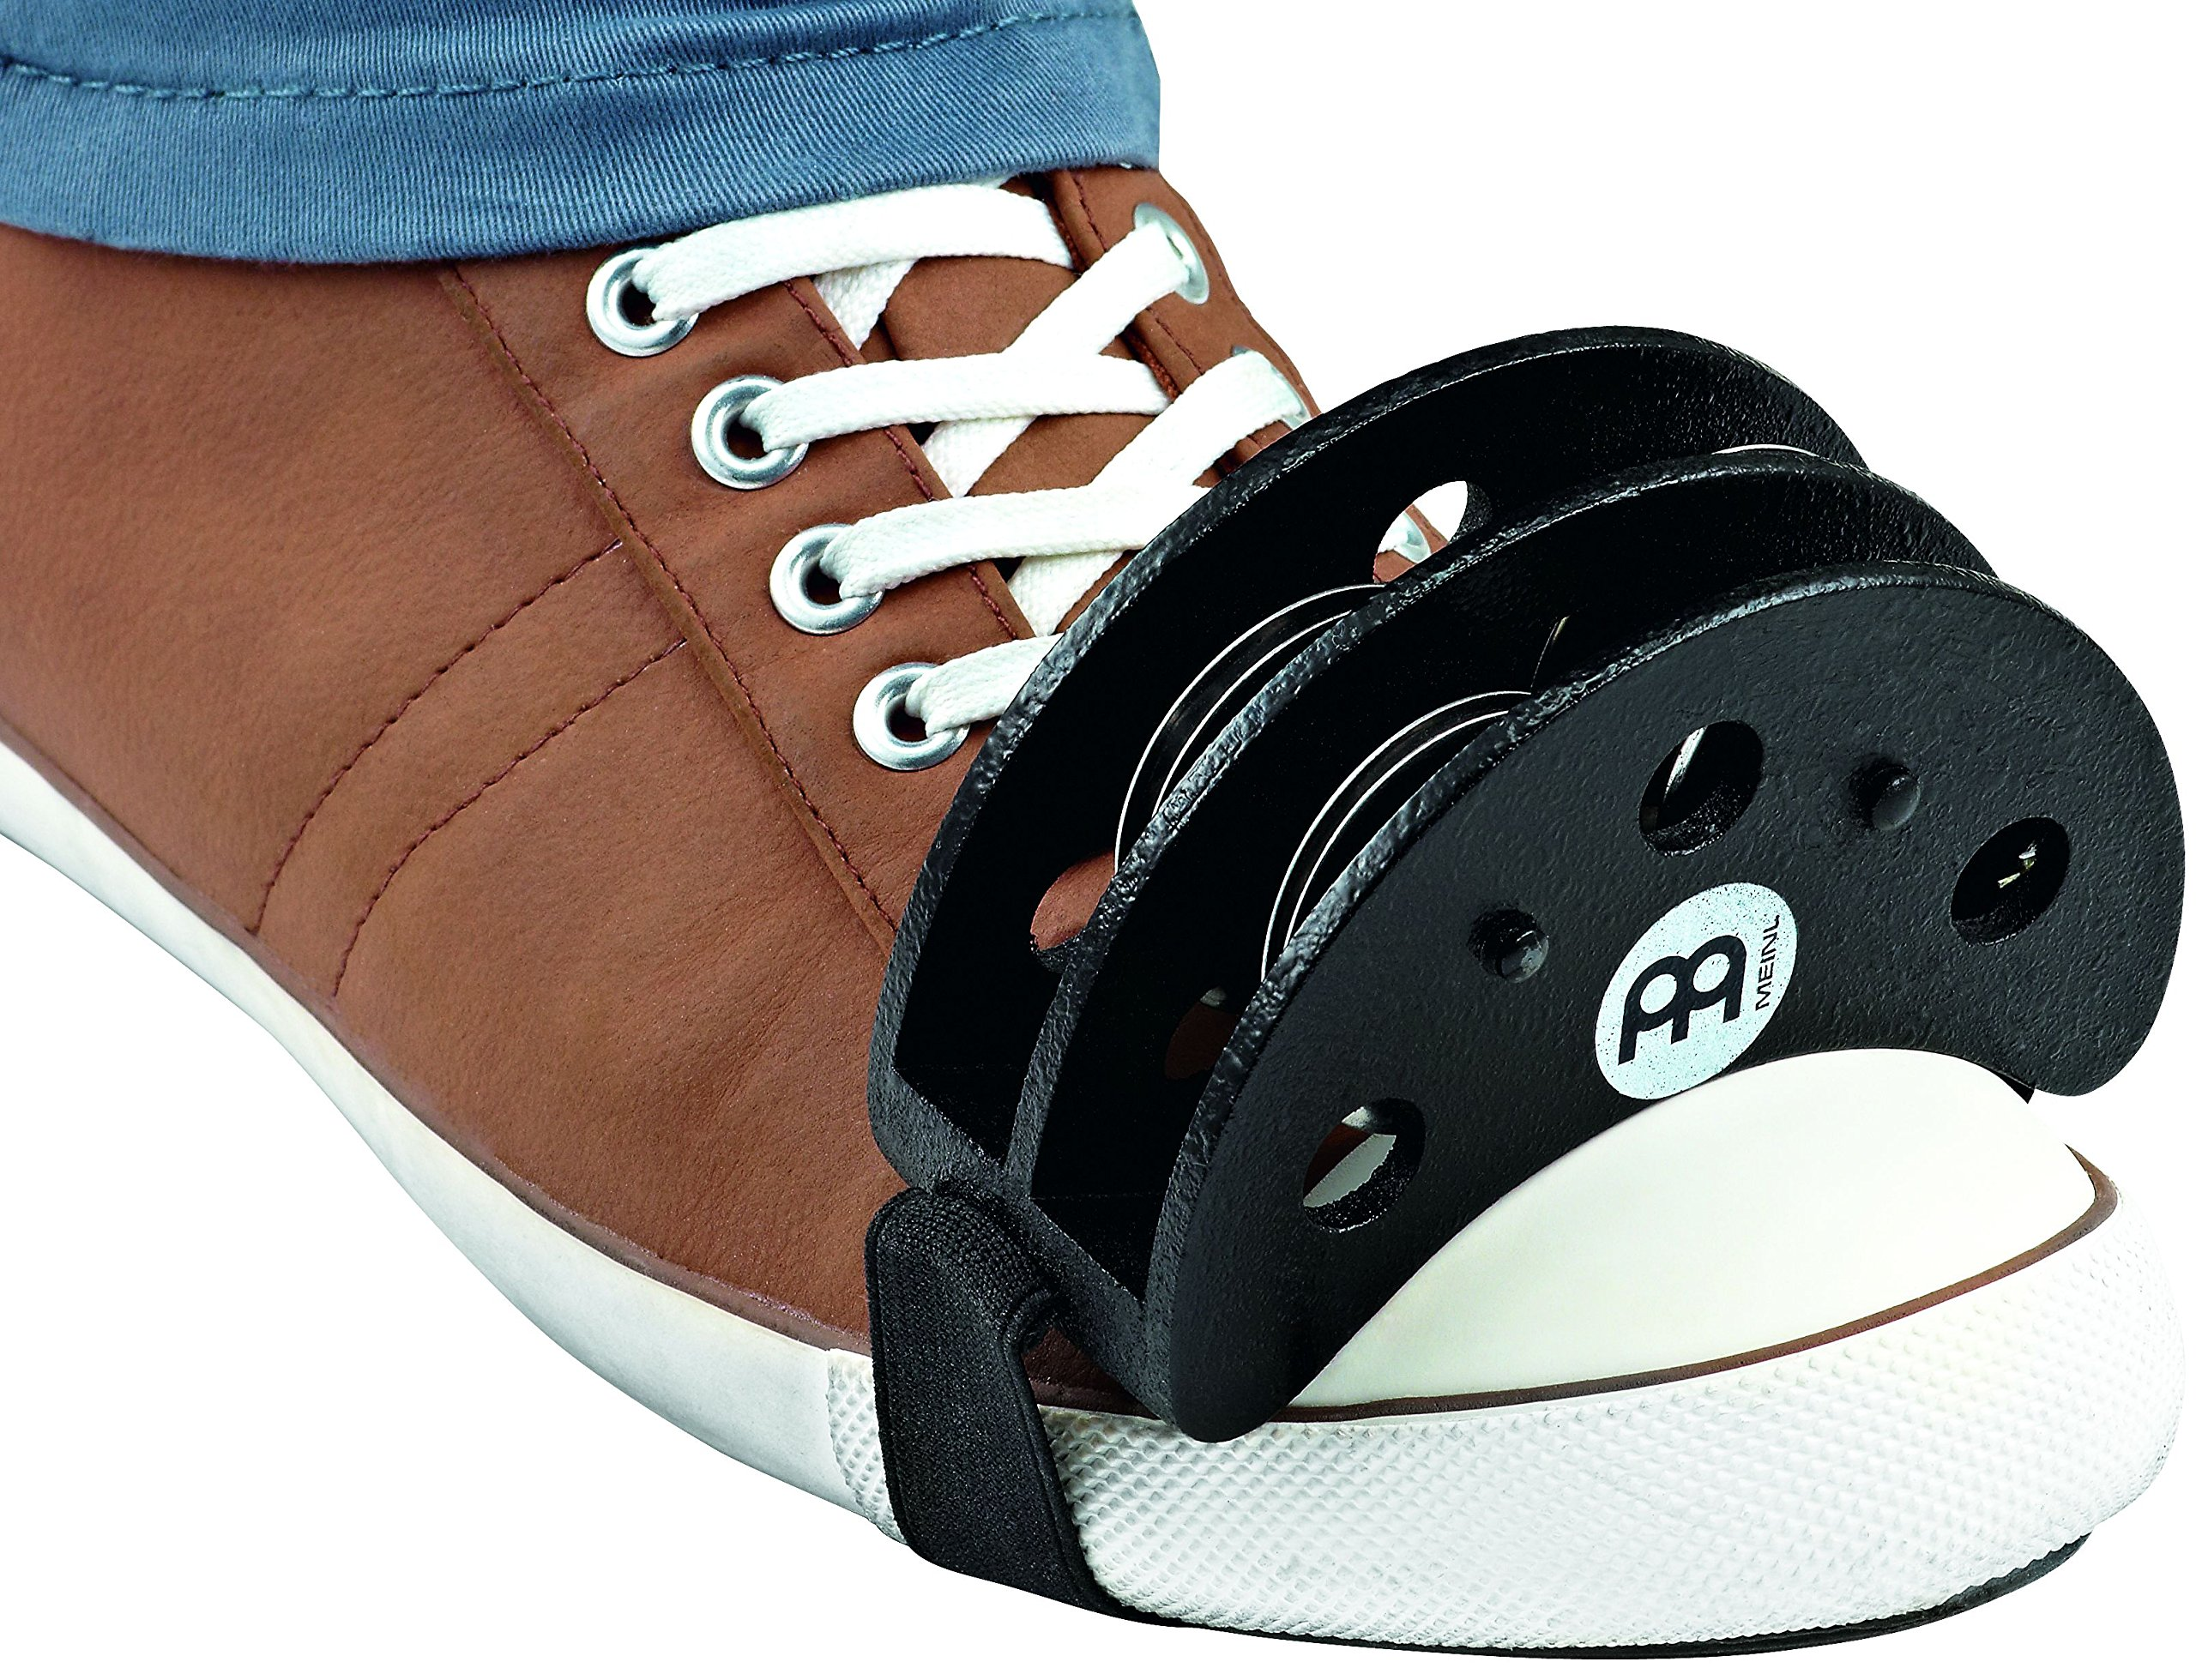 Meinl Foot Tambourine with Stainless Steel Jingles - NOT MADE IN CHINA - Accompaniment for Cajon